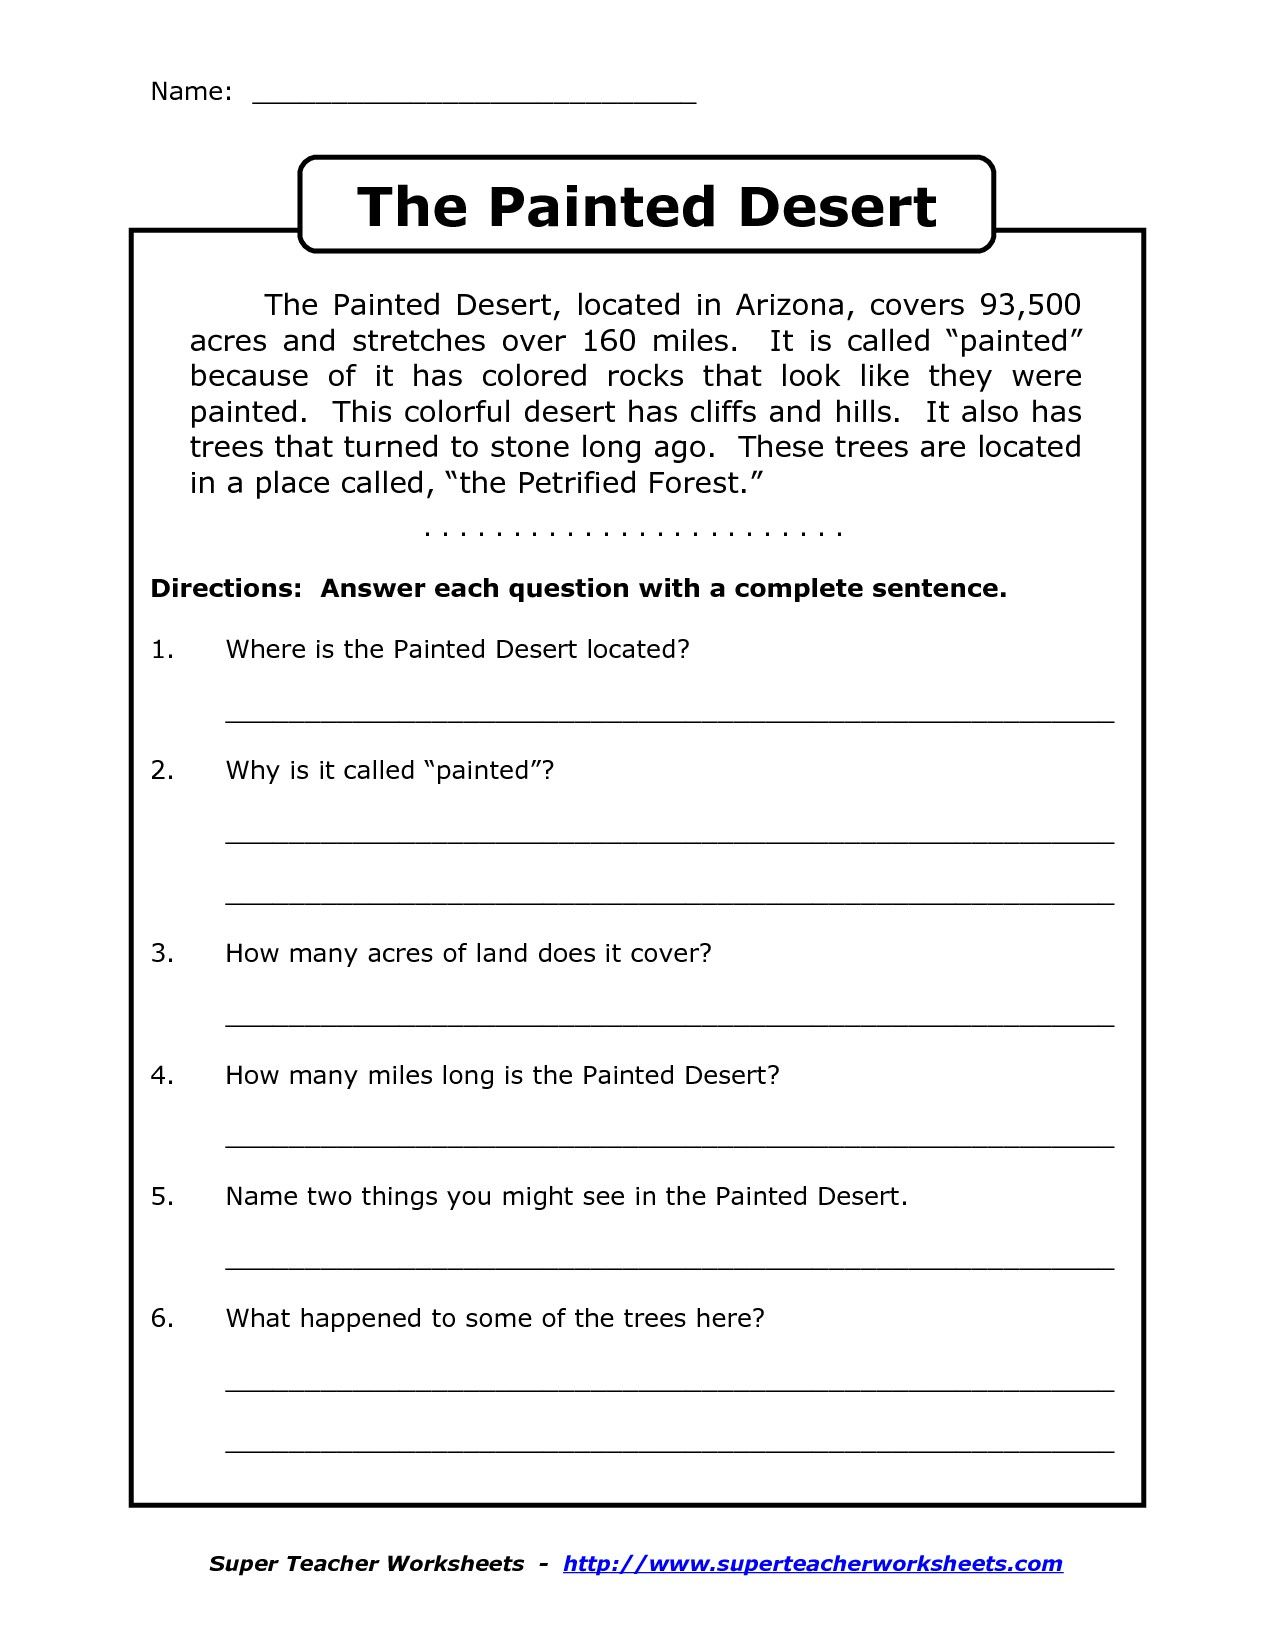 Worksheets 2nd Grade Ela Worksheets comprehension worksheet for 1st grade y2p3 the painted desert arizona